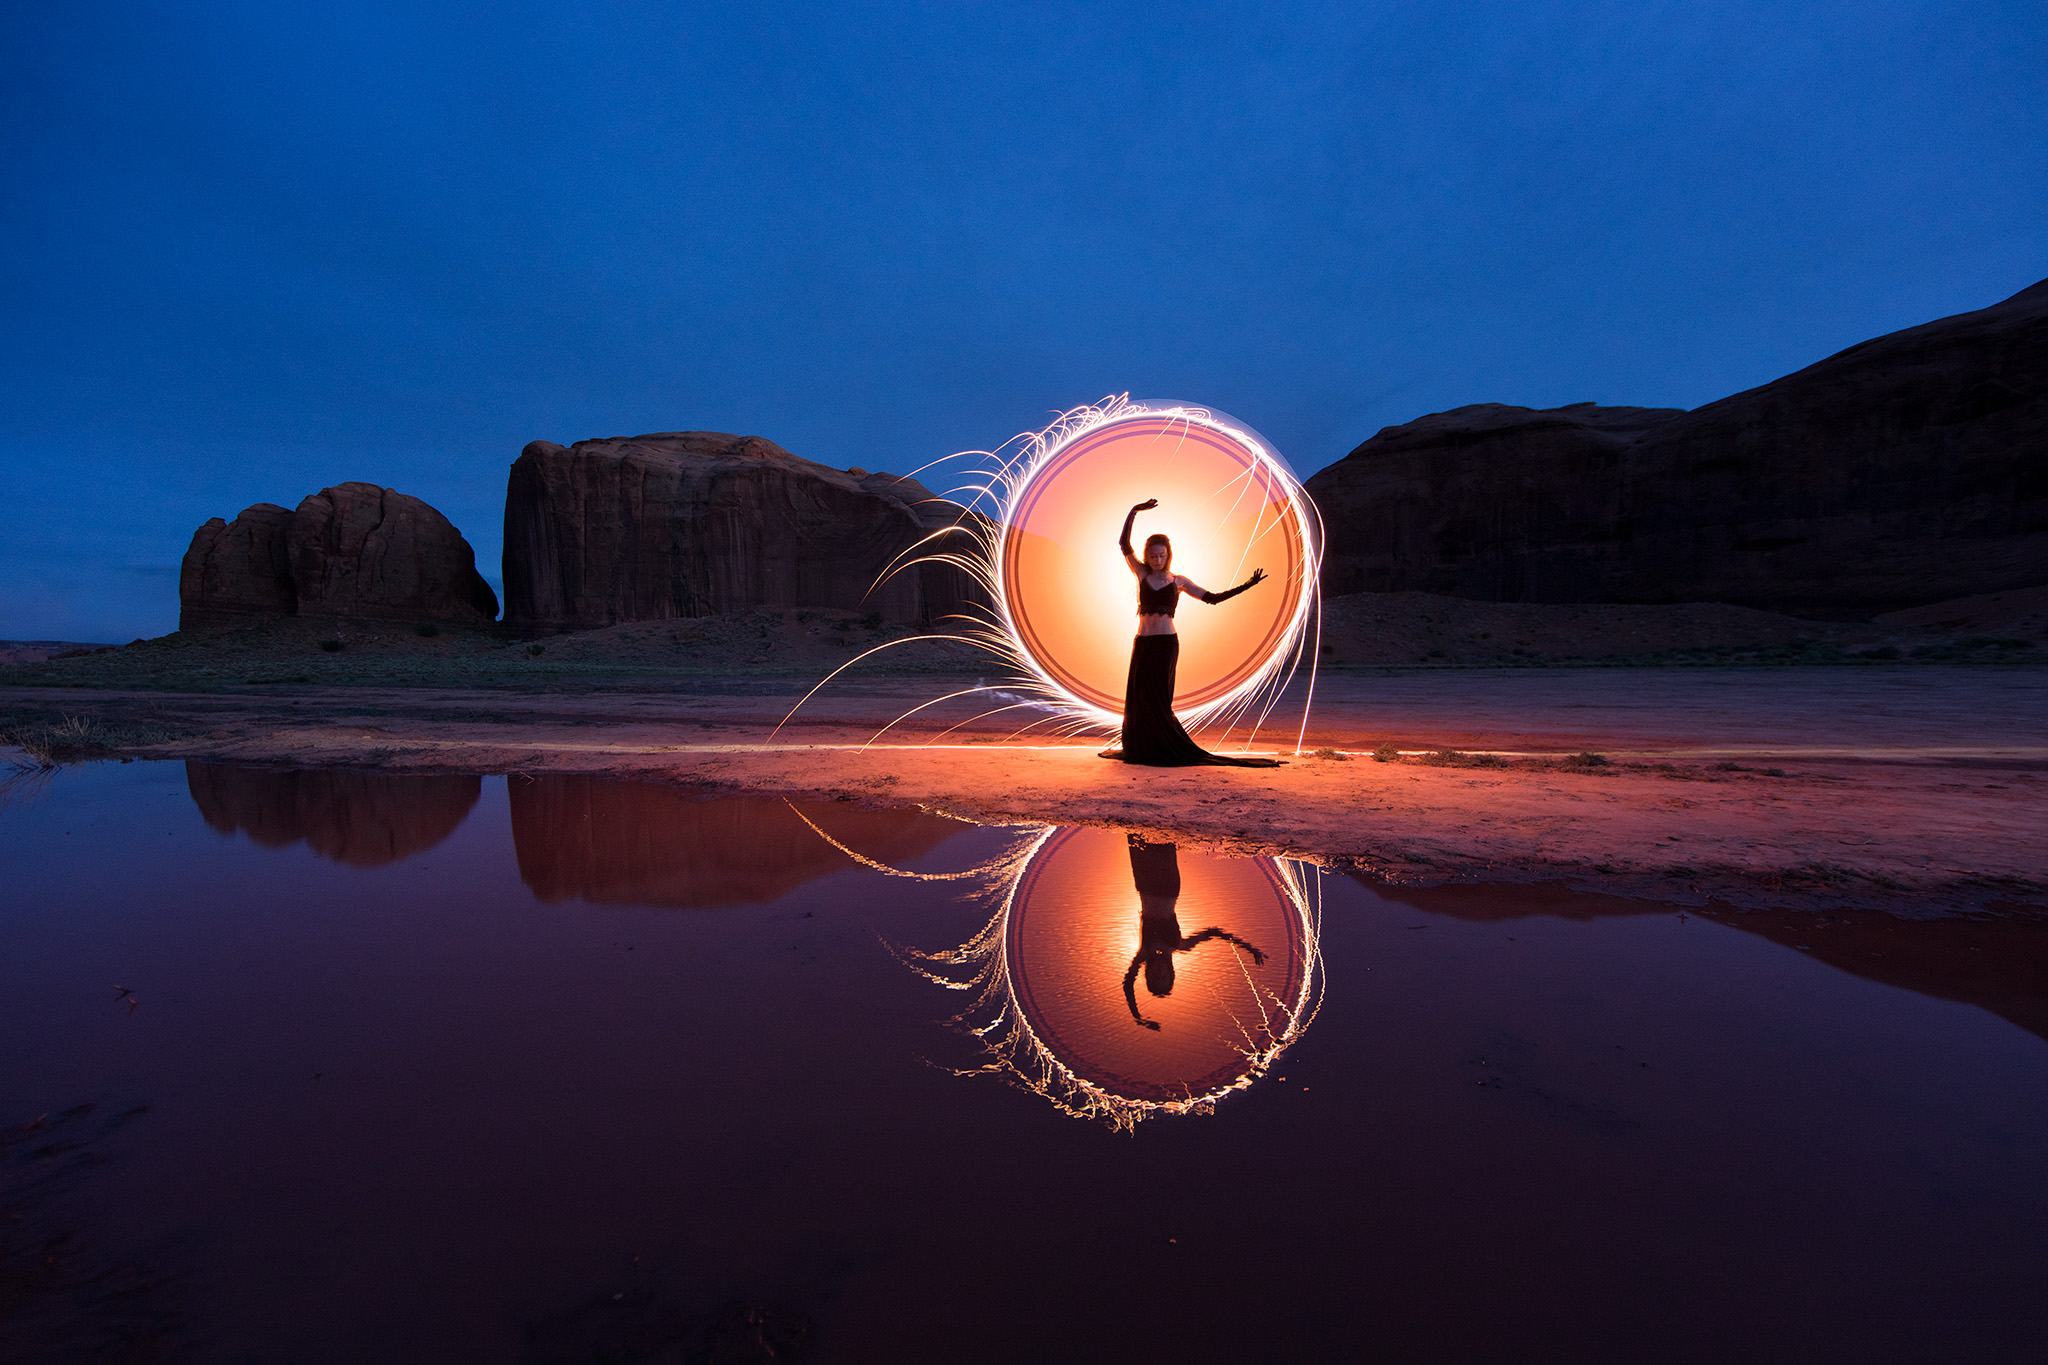 d4b4724-light-painting-kim-henry-eric-pare-arizona-reflection-tube-stories-2048-jpg-yc8n.jpg